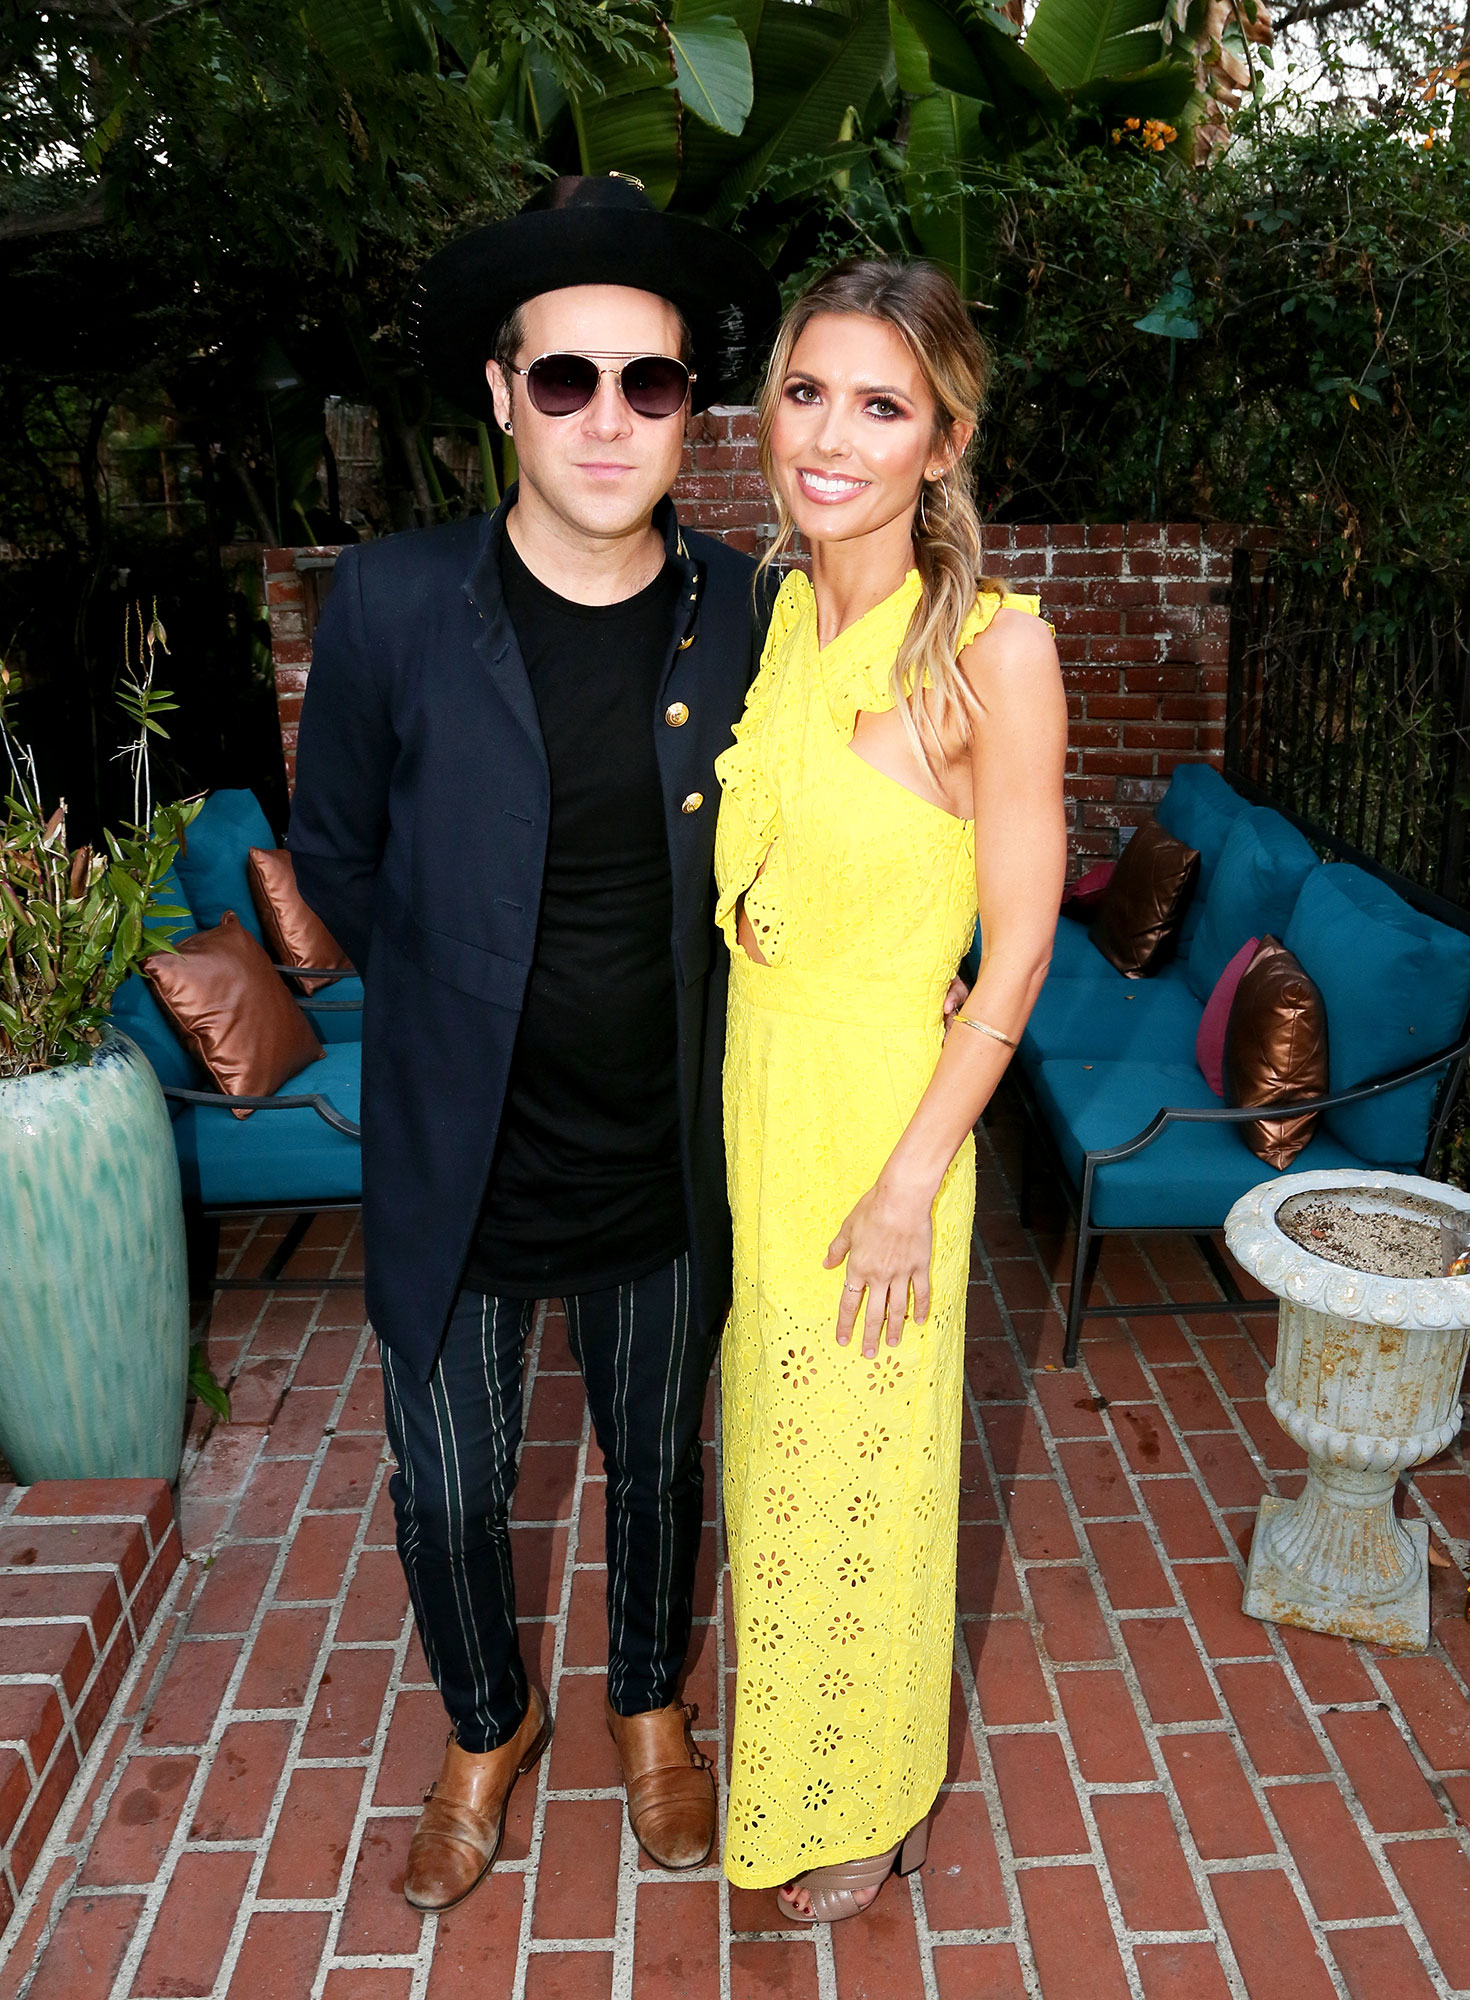 Celebrity Couples of 2018 Ryan Cabrera and Audrina Patridge - Eight years after they originally dated, the Hills star rekindled her relationship with the musician in May. While they called it quits five months later, Patridge told Us in December that she loves Cabrera.